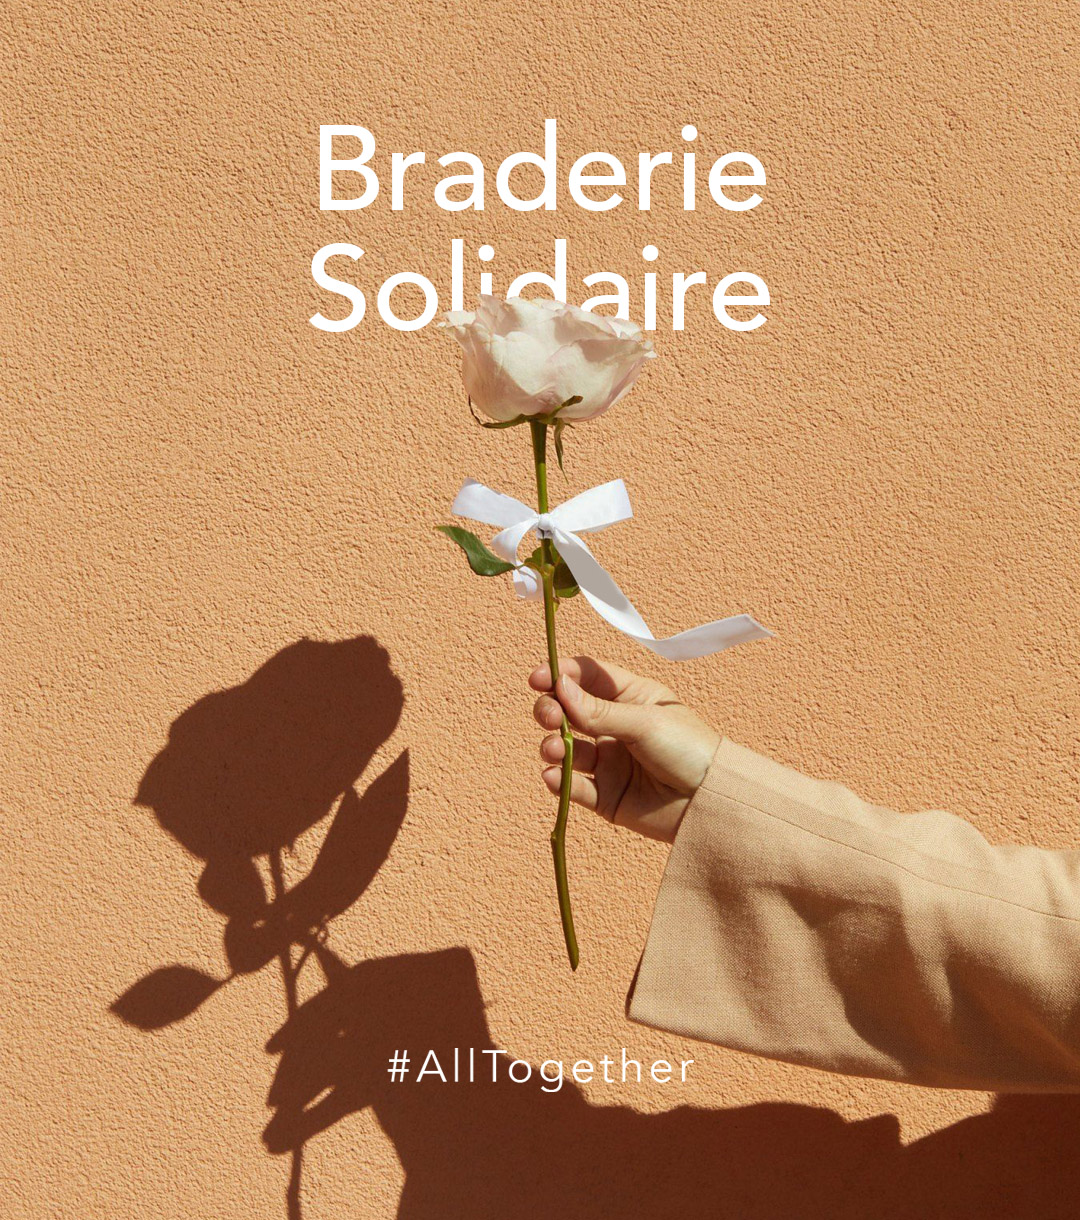 #AllTogether - La braderie solidaire revient